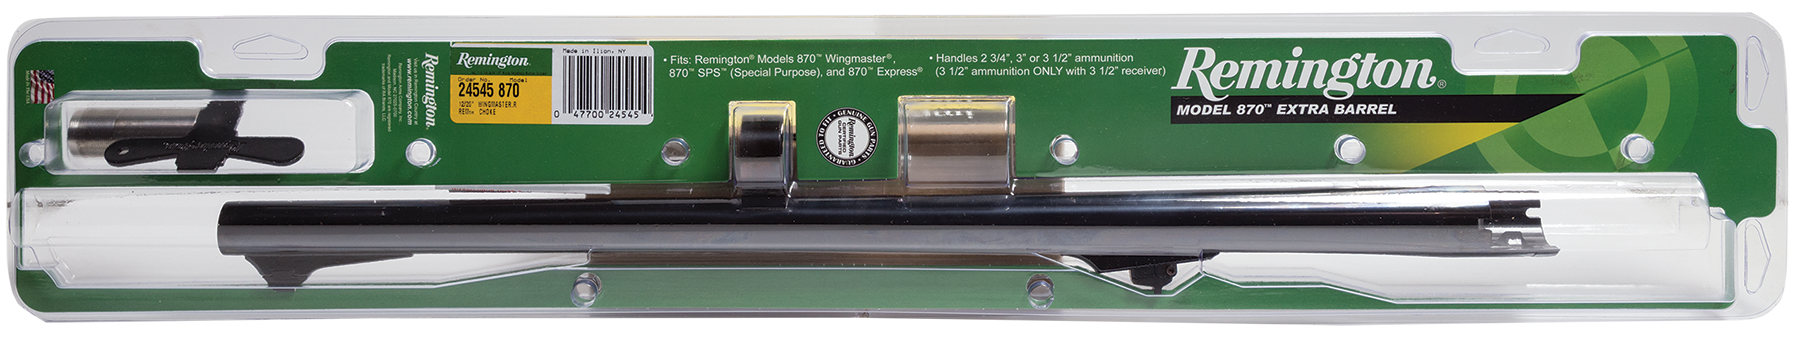 Remington 24545 870 12 Gauge 20